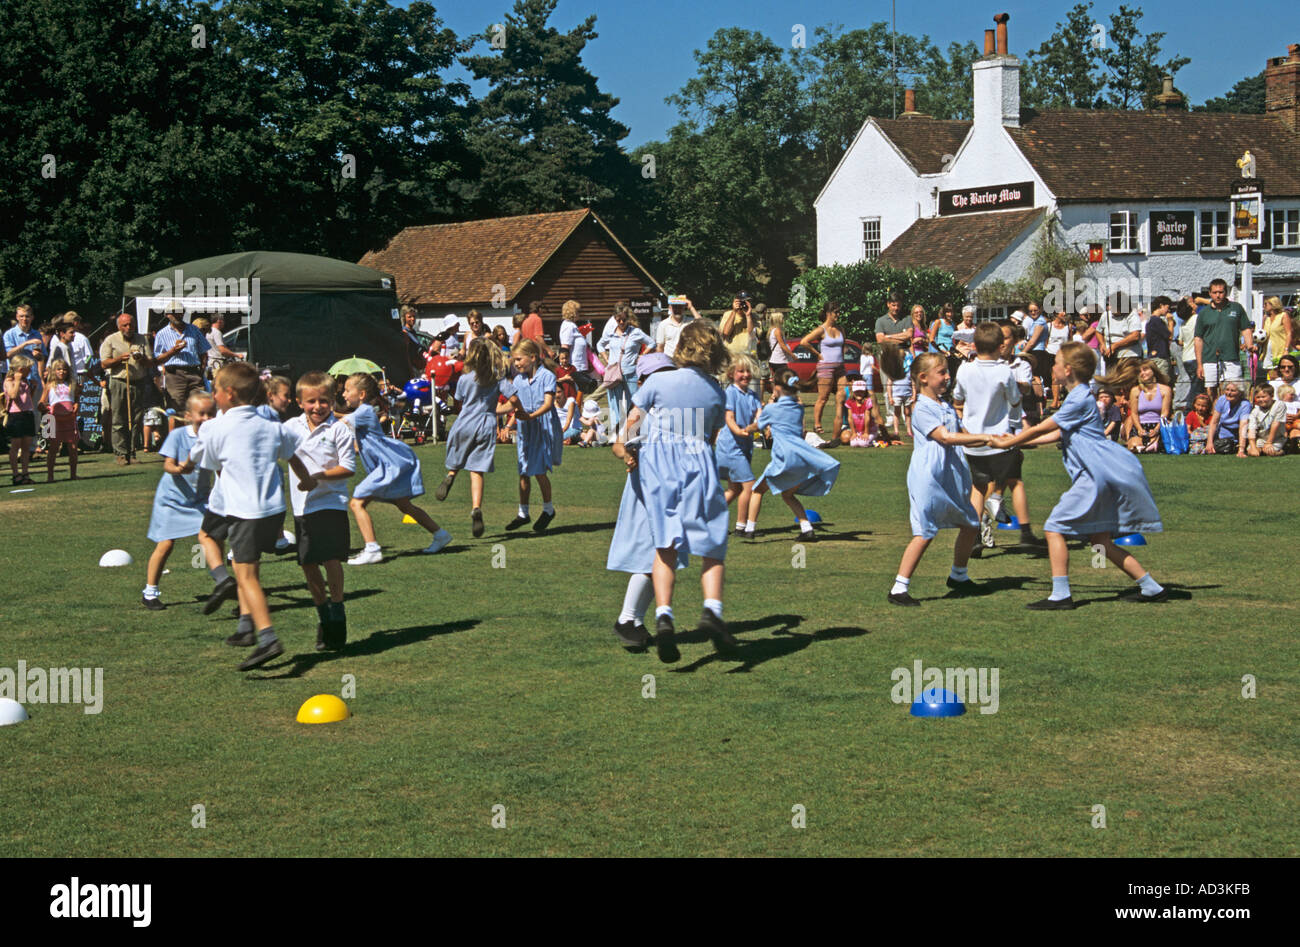 TILFORD SURREY UK July Primary school children entertaining the crowds with their country dancing - Stock Image